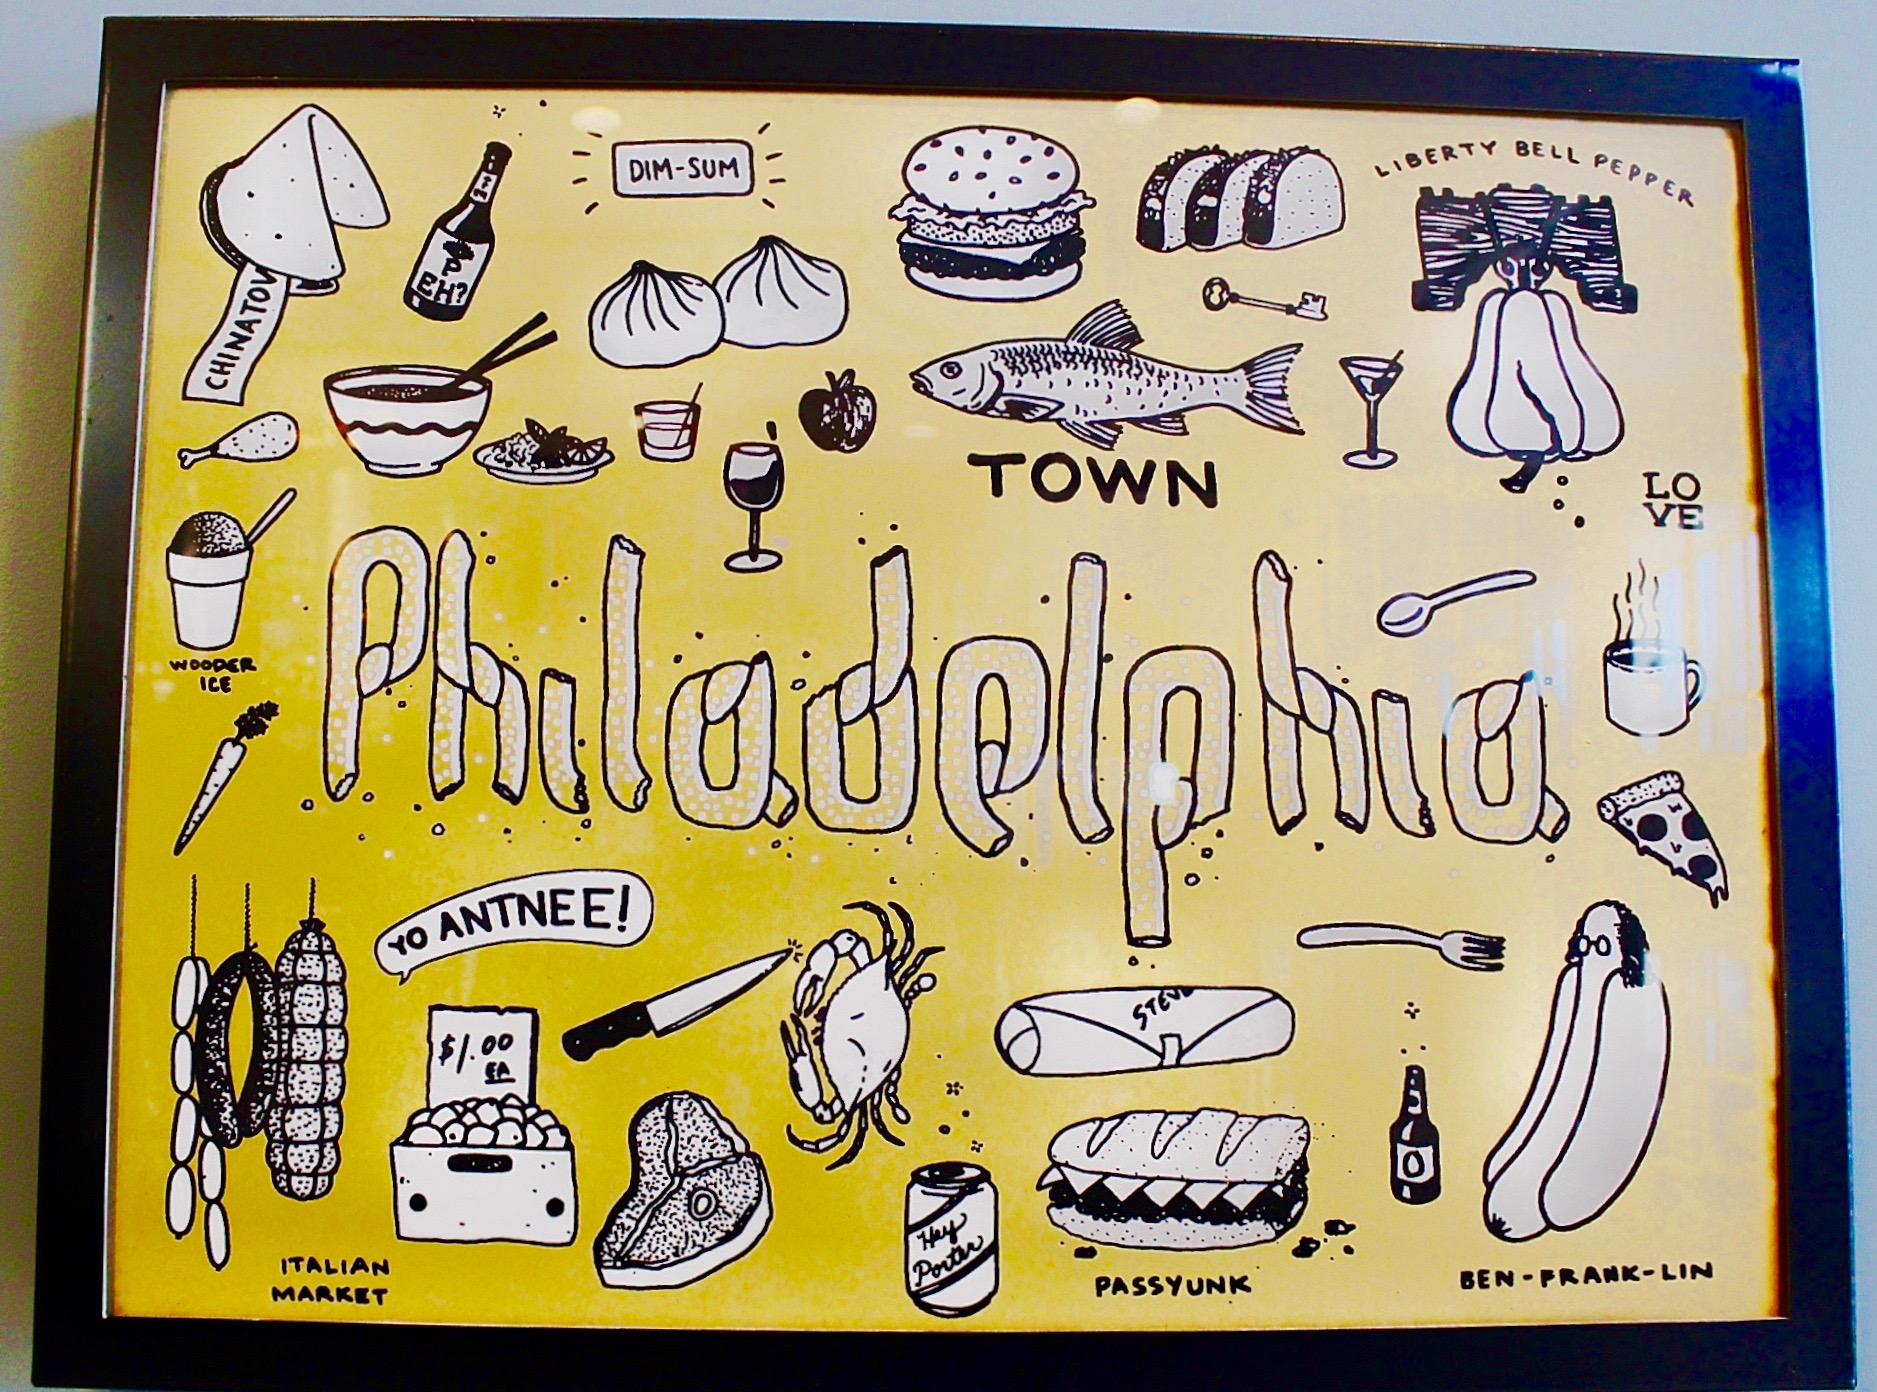 whole-foods-philadelphia-itinerary-2-days.jpg